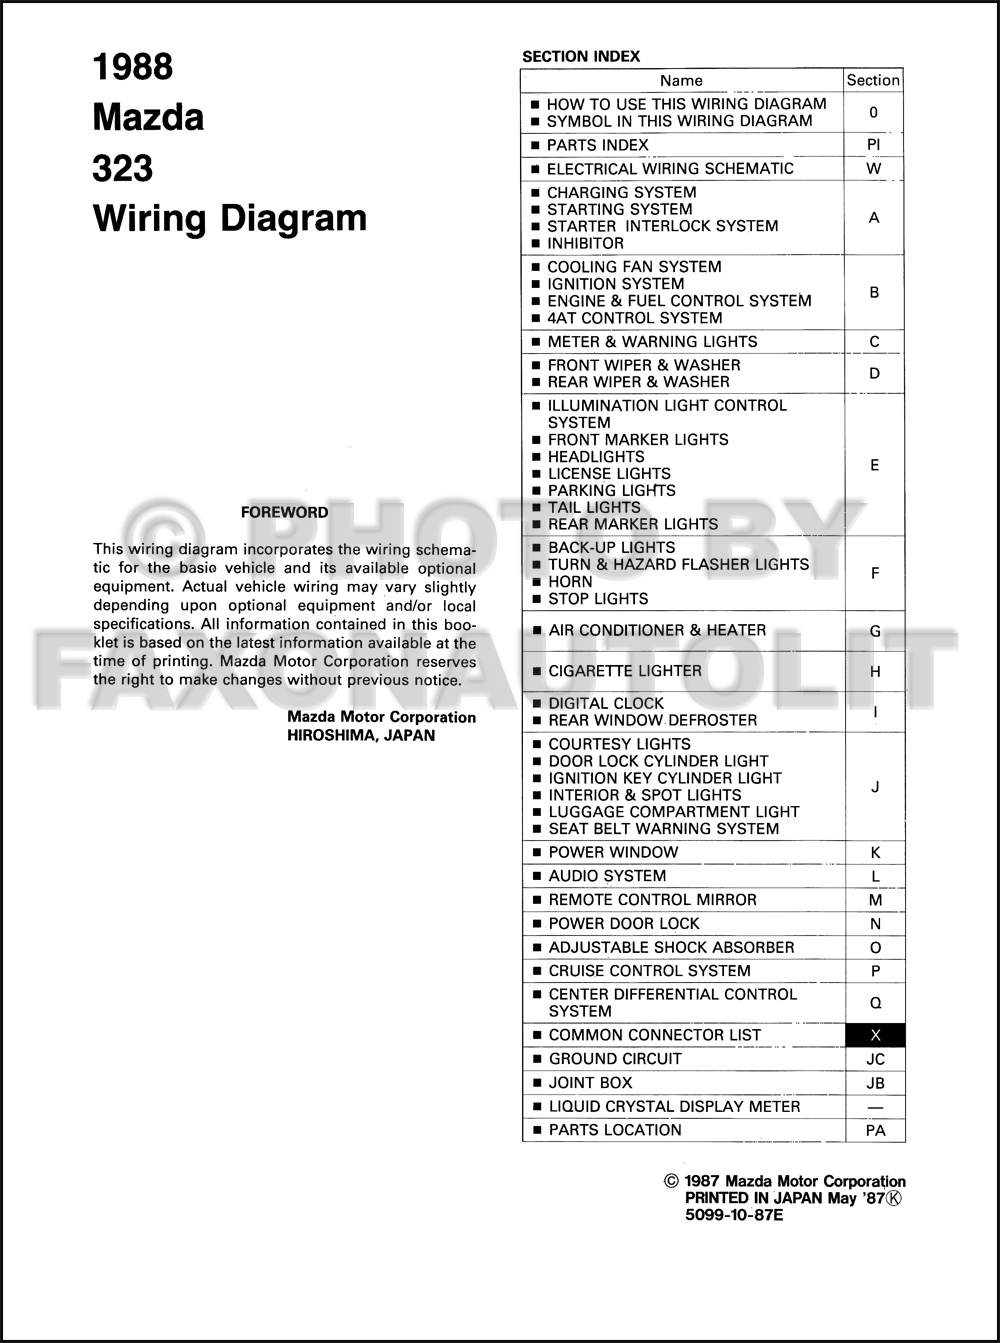 Mazda 323 Parts Manual Hall Effect Sensor Wiring Diagram Http Wwwjustanswercom Volvo Array Central Locking Library Rh 76 Codingcommunity De